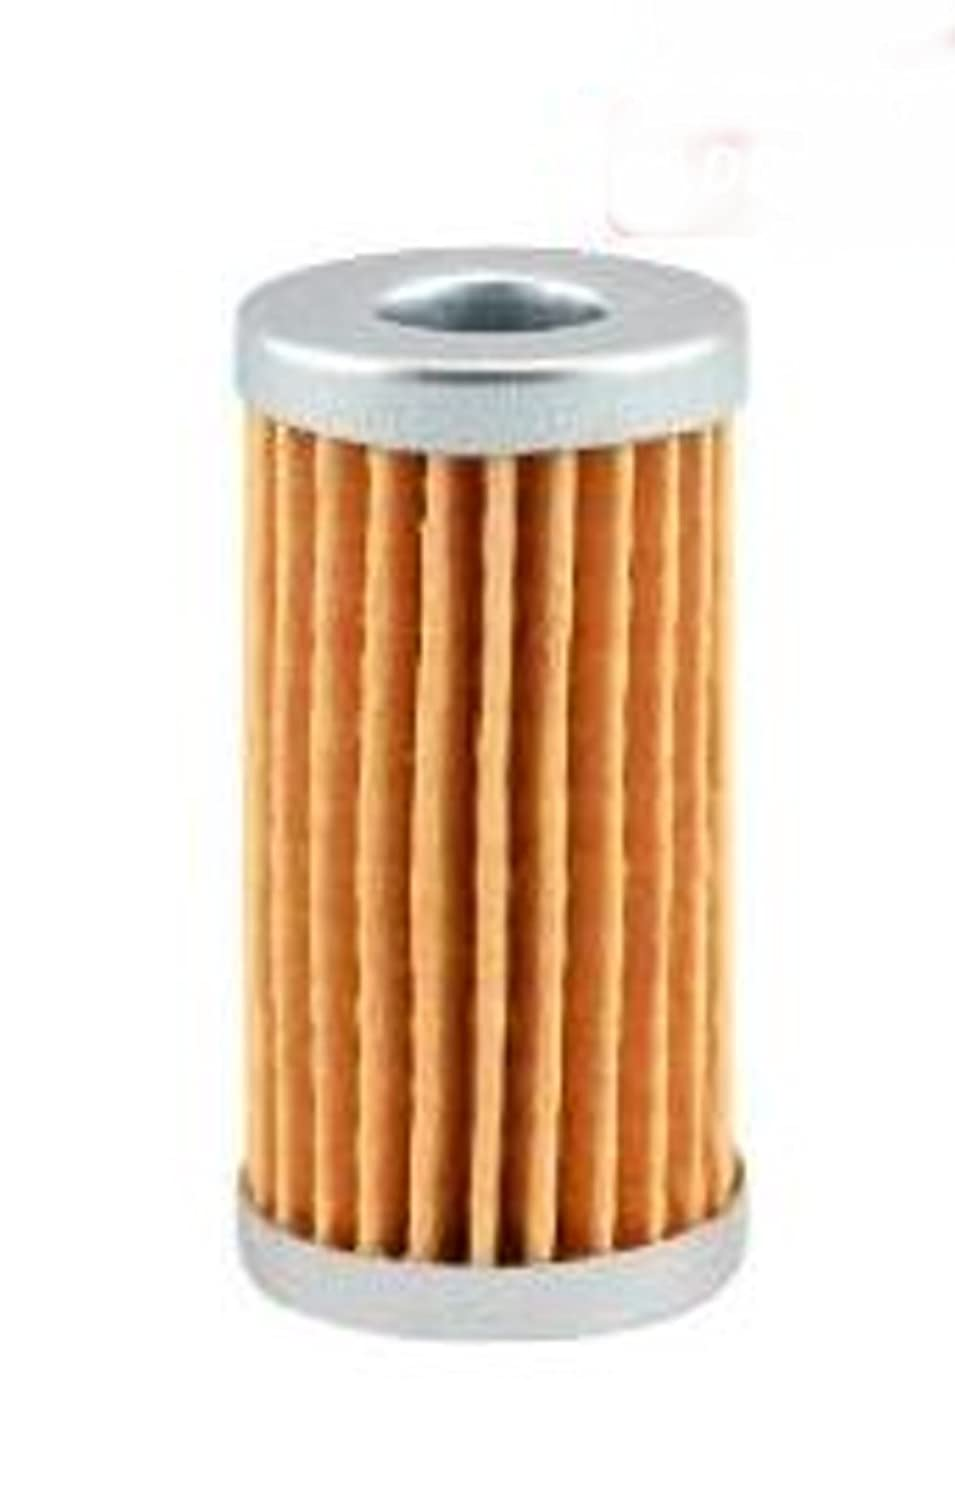 Fuel Filter for Ford 1000 1110 1120 1210 1215 1220 1300 1310 1320 1500 on ford 8n gaskets, ford 8n timing marks, ford 8n plug wires, ford 8n paint code, ford 8n transmission, ford 8n headlights, ford 8n firing order, ford 8n flywheel, ford 8n starter, ford 8n shop manual, ford 8n oil pump, ford 8n distributor, ford 8n exhaust, ford 8n front bumper, ford 8n tune up, ford 8n points install, ford 8n steering wheel, ford 8n ignition timing, ford 8n emblem, ford 8n gas cap,